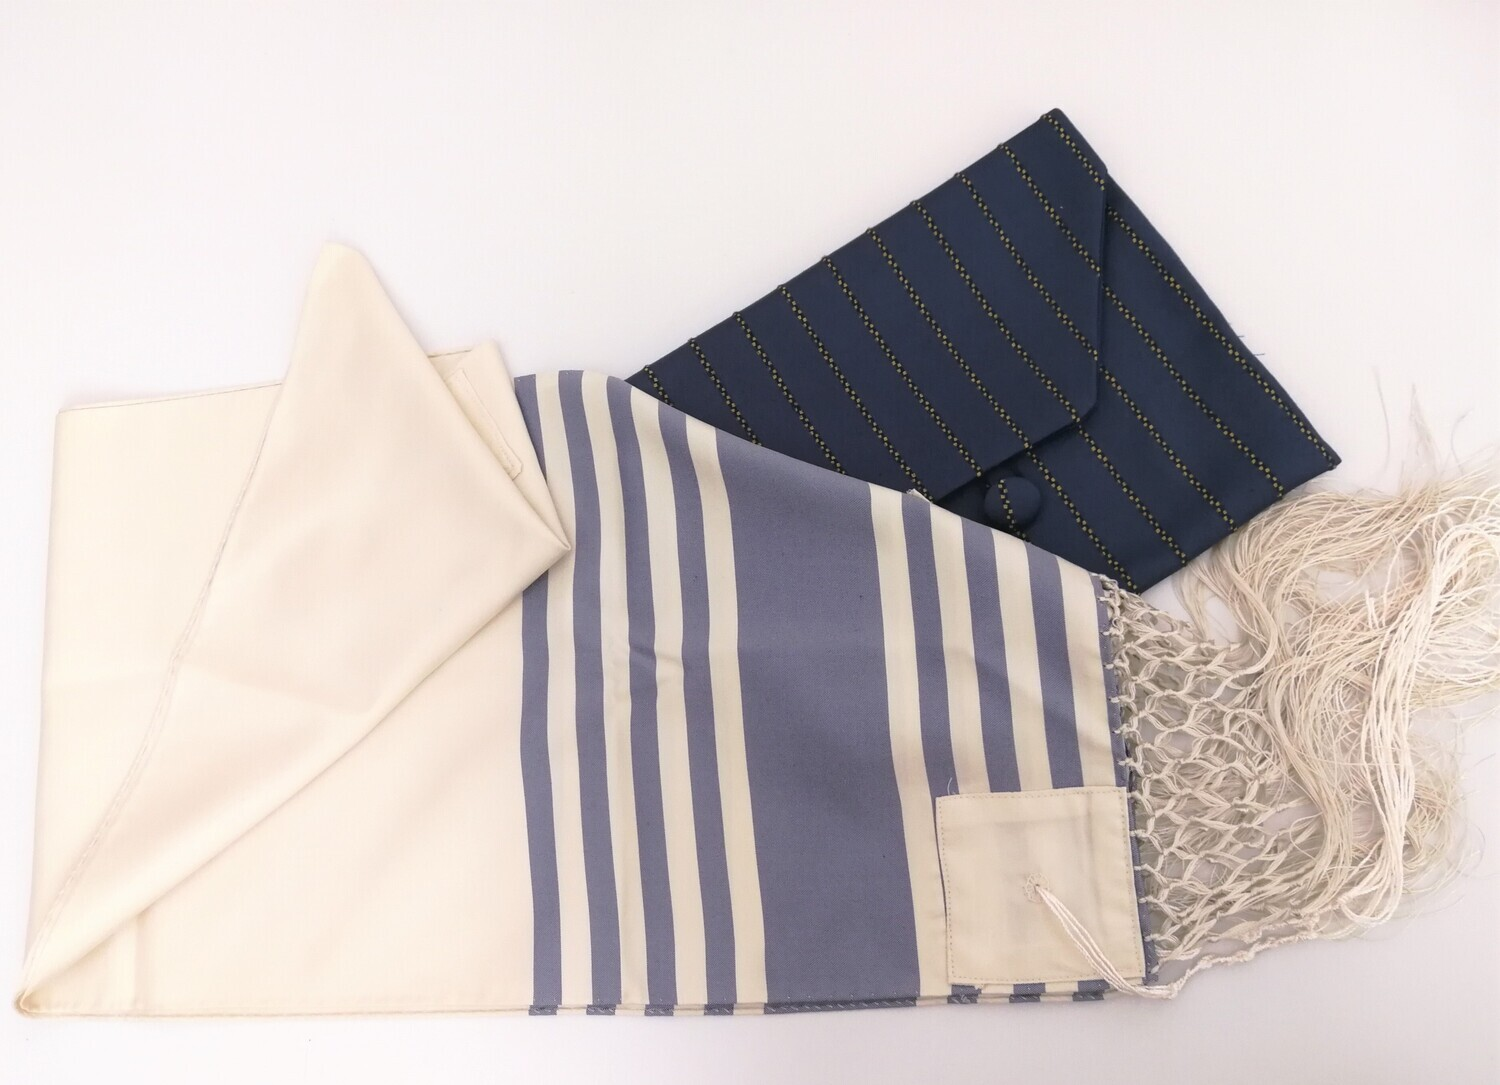 Talled Piccolo | Small Tallit